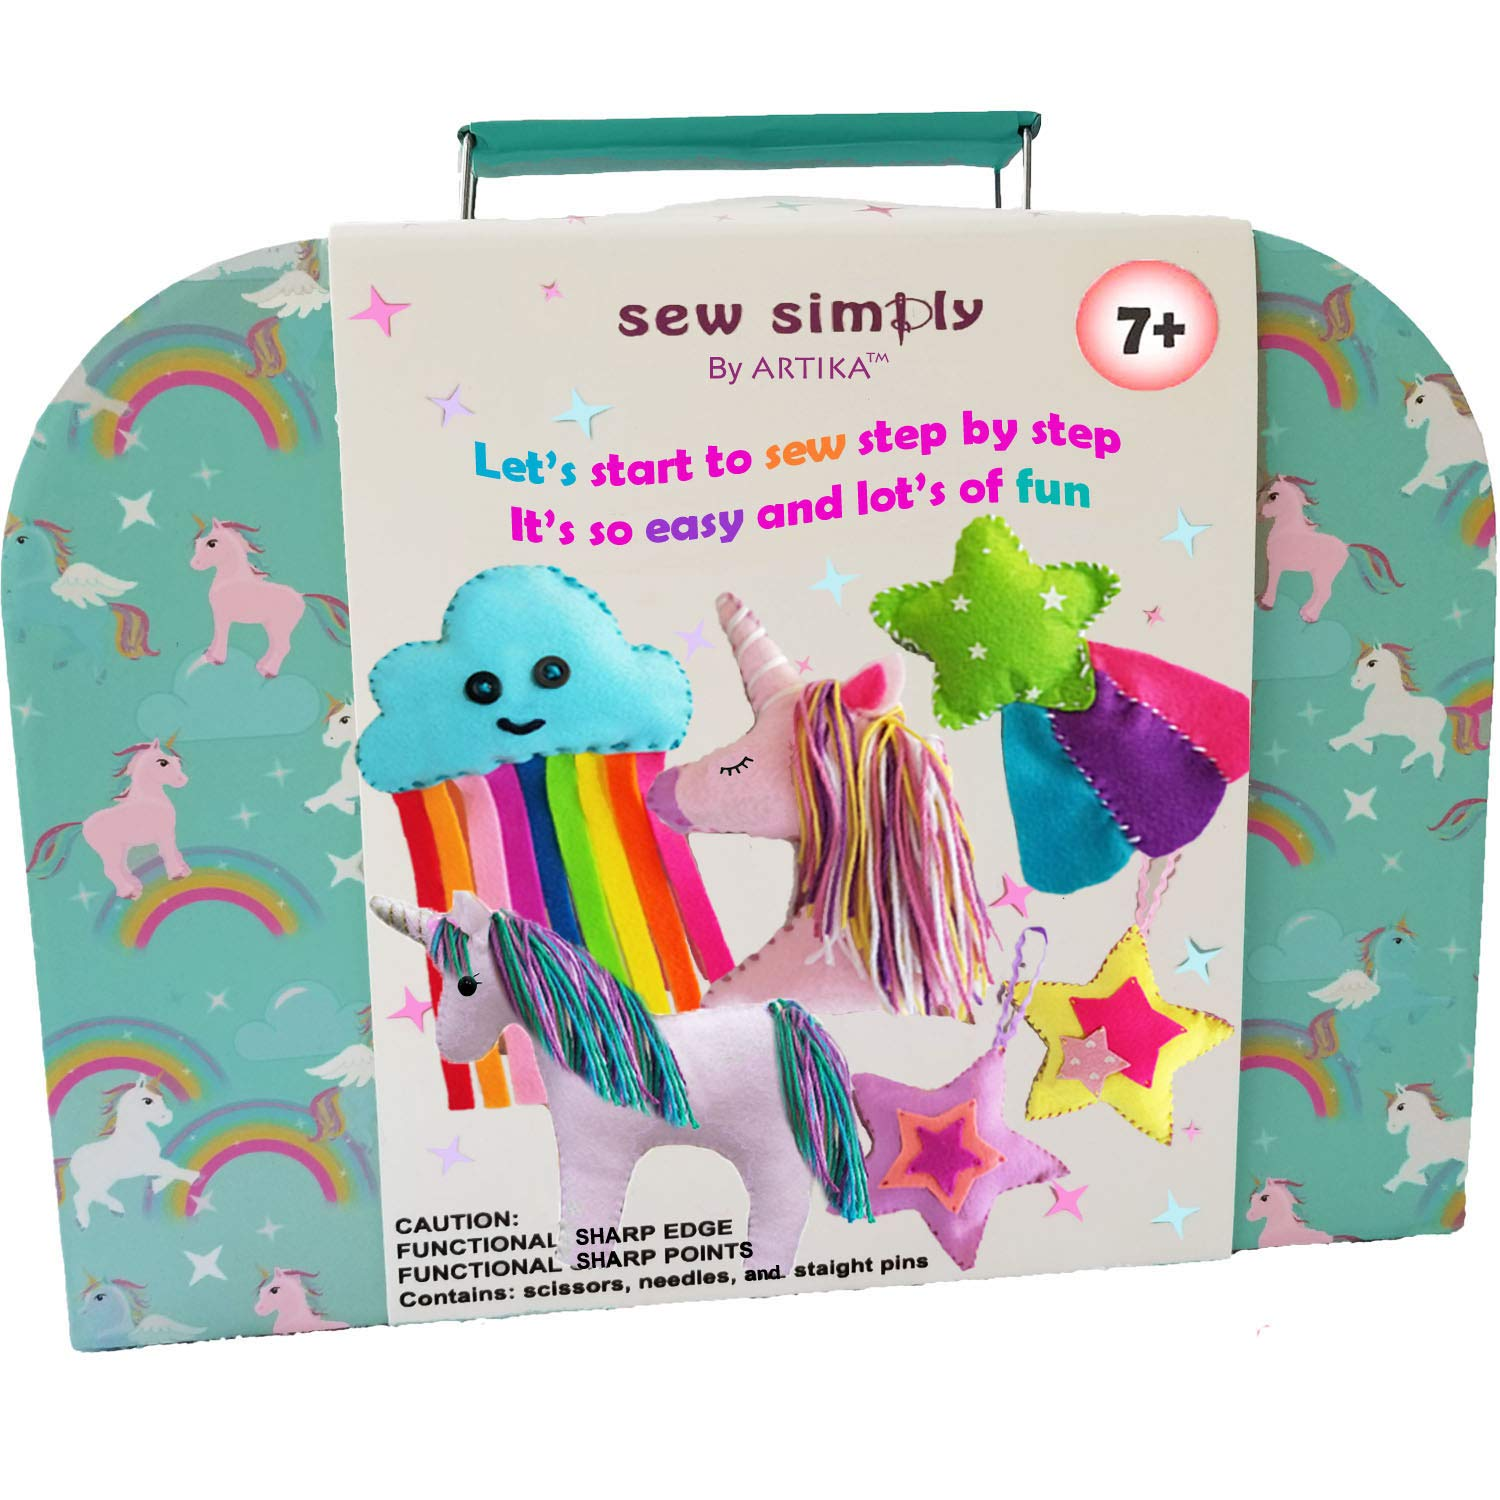 ARTIKA Sewing KIT for Kids, DIY Craft for Girls, The Most Wide-Ranging Kids Sewing Kit Kids Sewing Supplies, Includes a Booklet of Cutting Stencil Shapes for The First Step in Sewing. (Unicorn kit) by ARTIKA